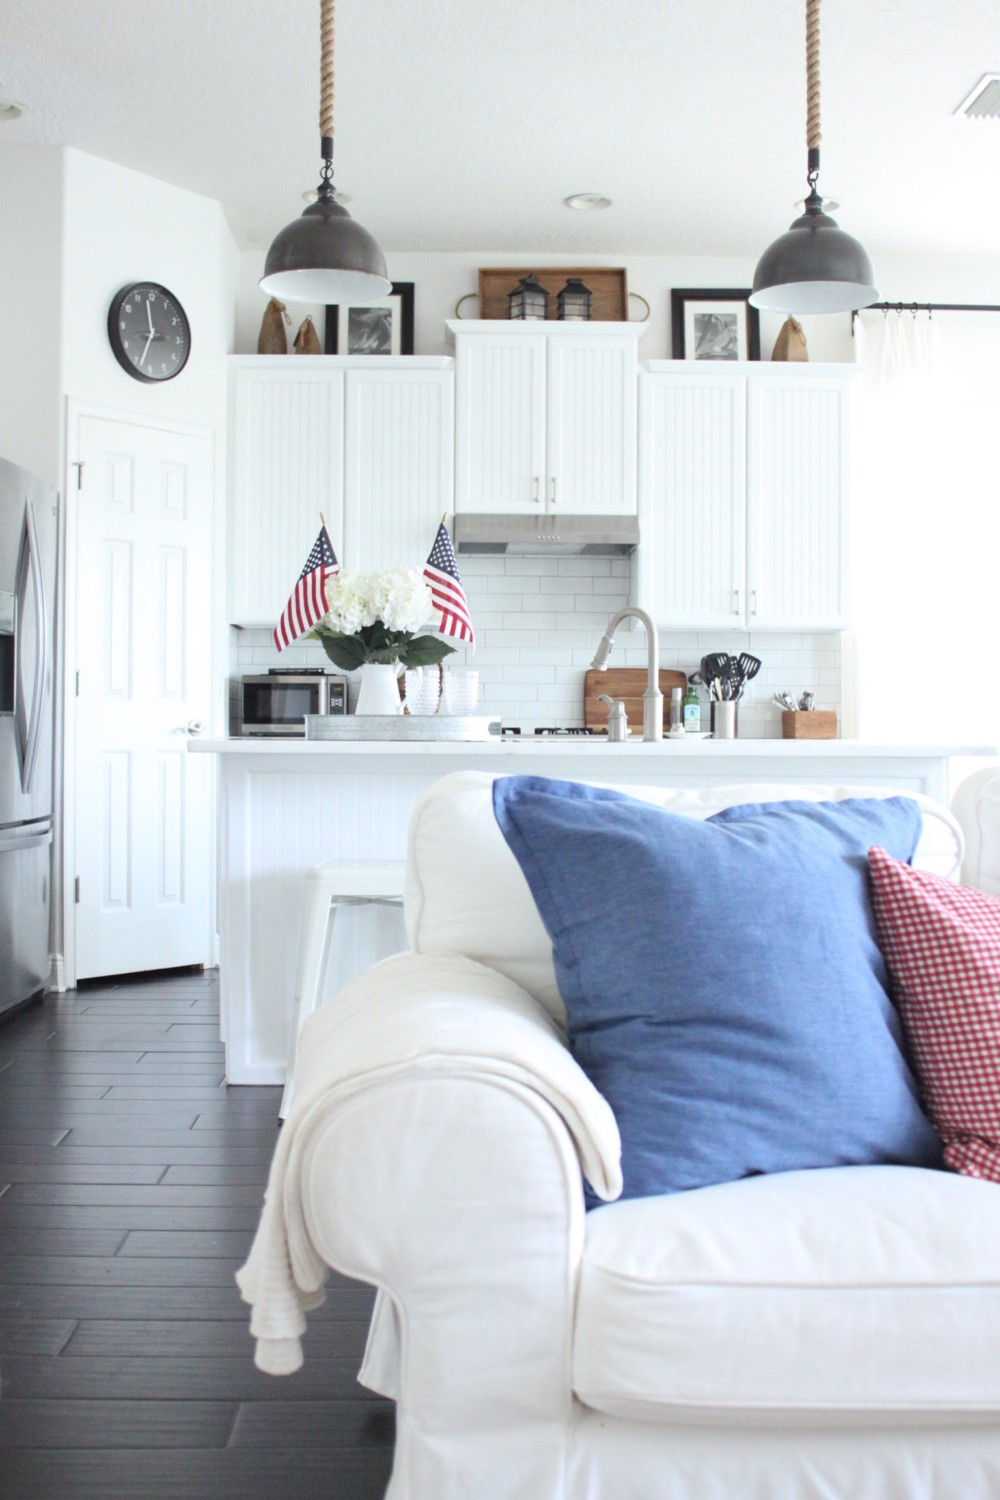 Patriotic kitchen - A Simple White Pitcher Filled With Flowers And Flags Is The Perfect Patriotic Touch